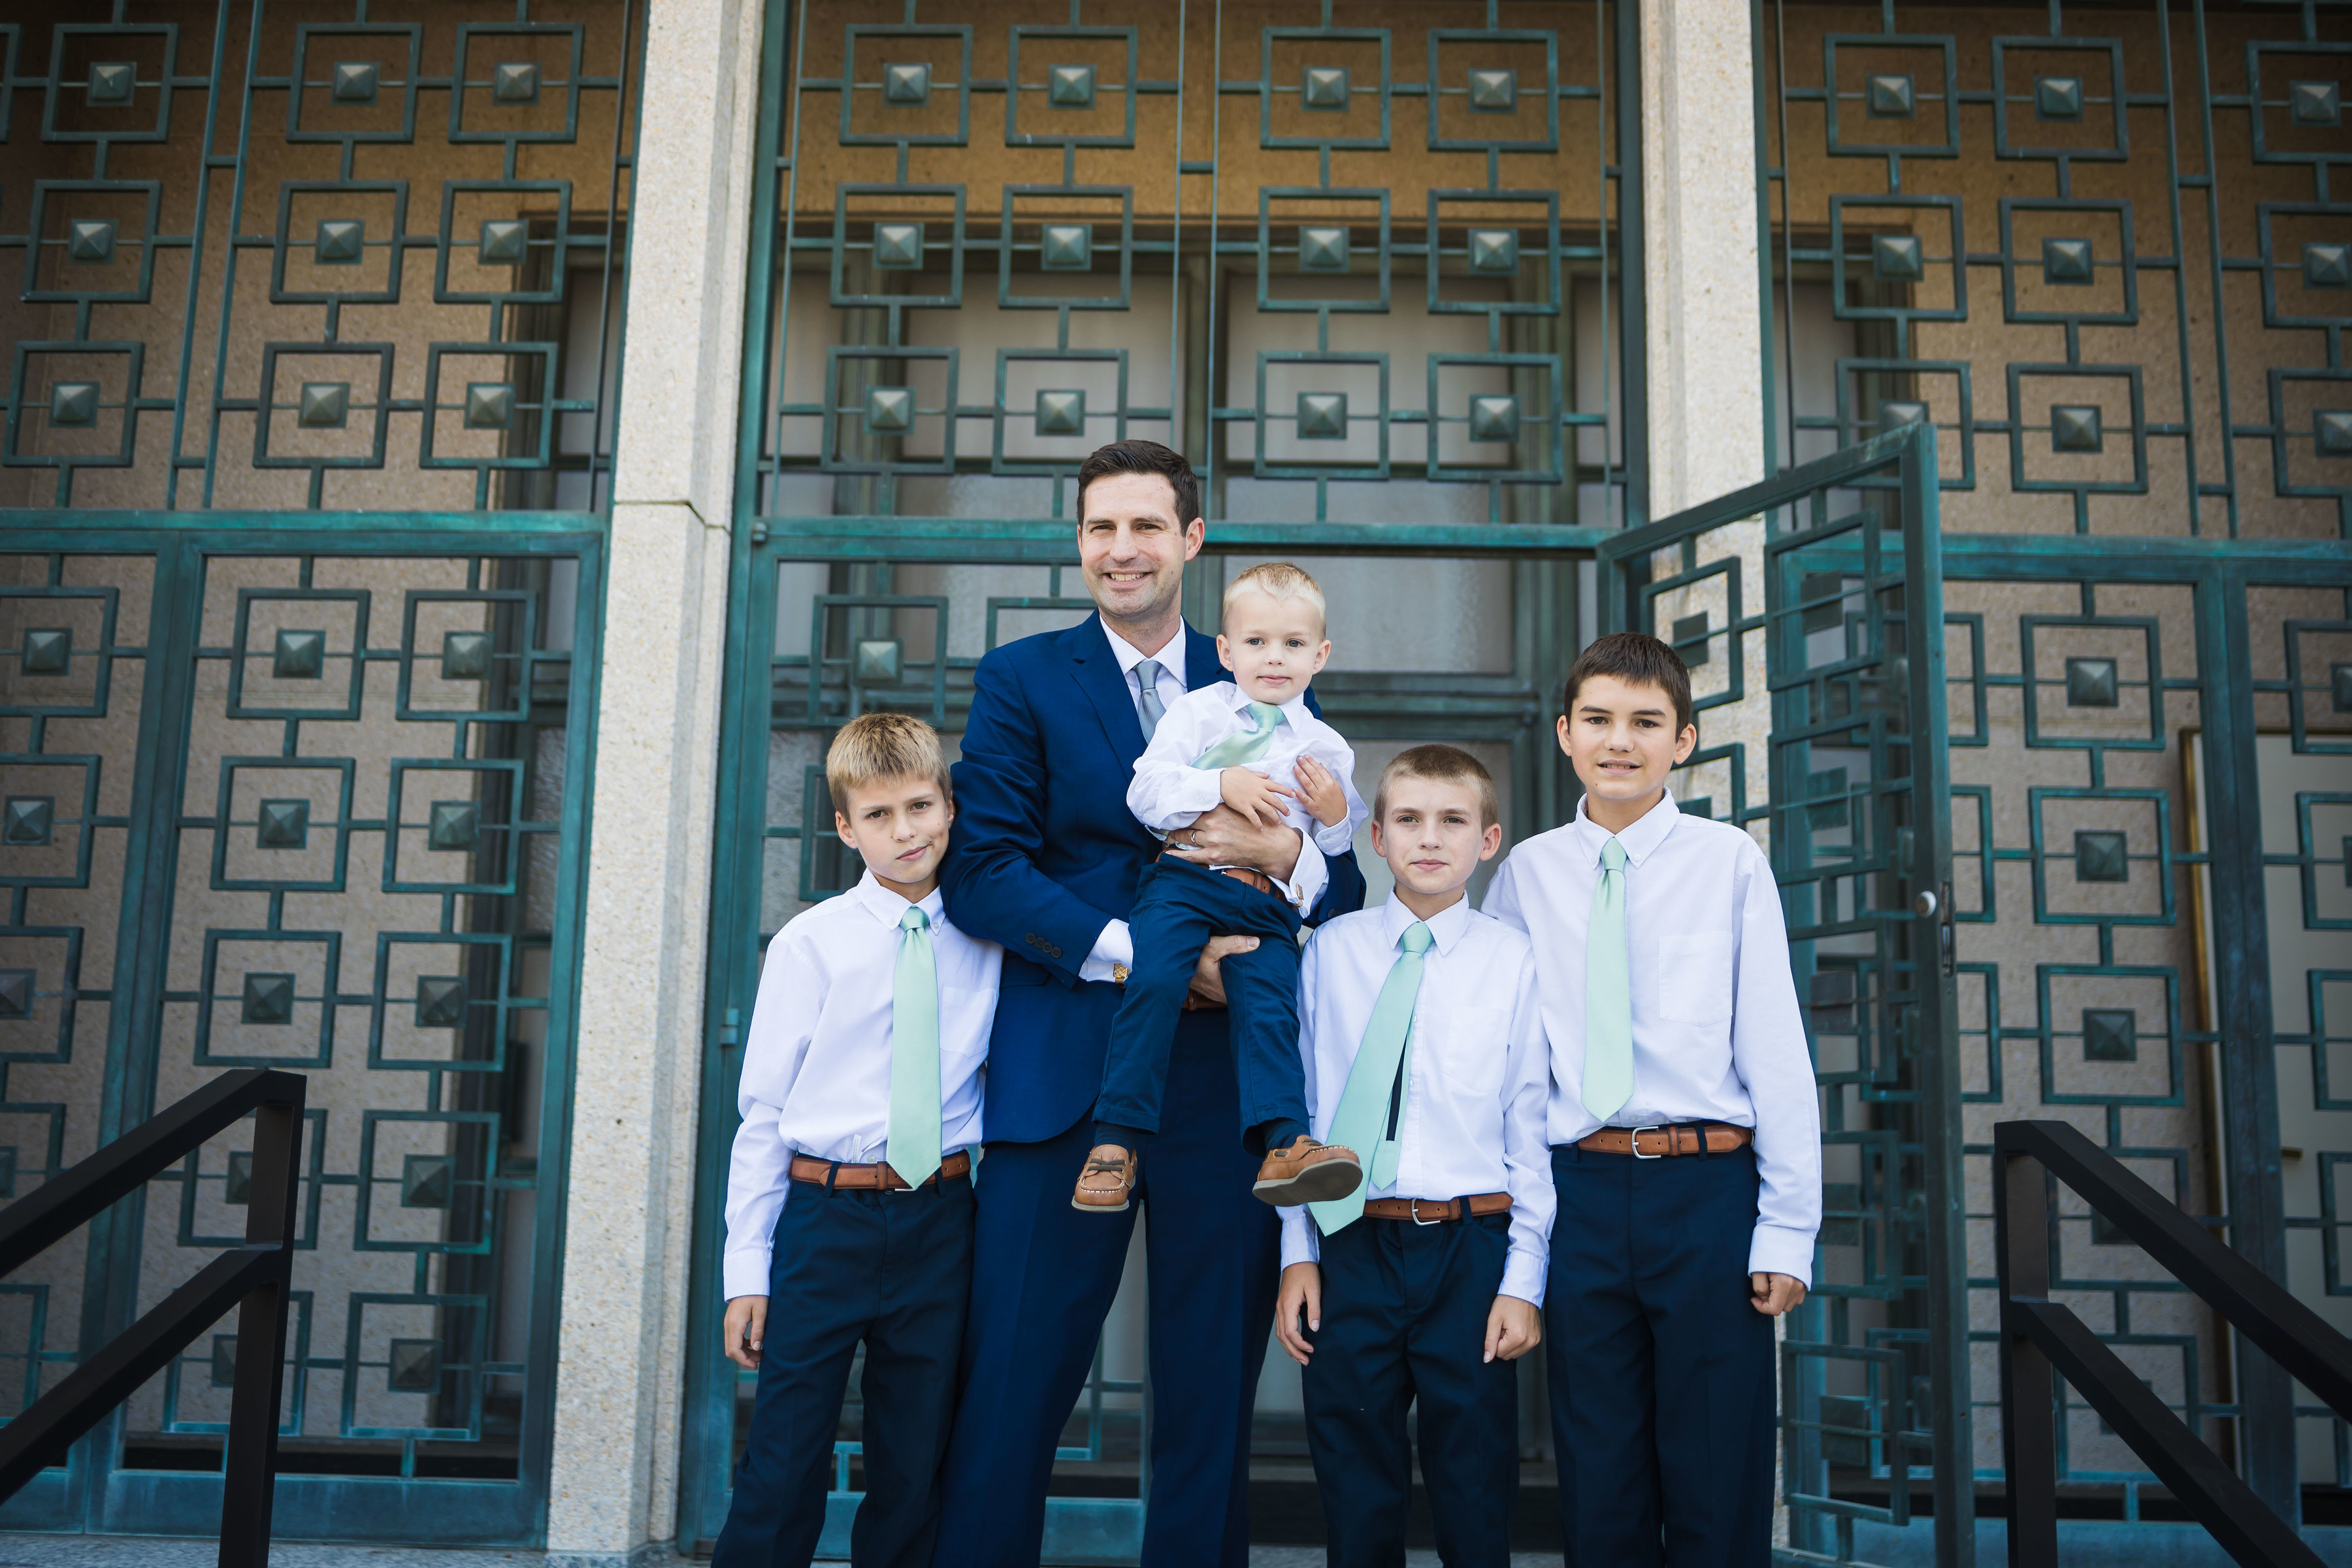 Jacob Evans with his four sons outside the Los Angeles temple on his wedding day.